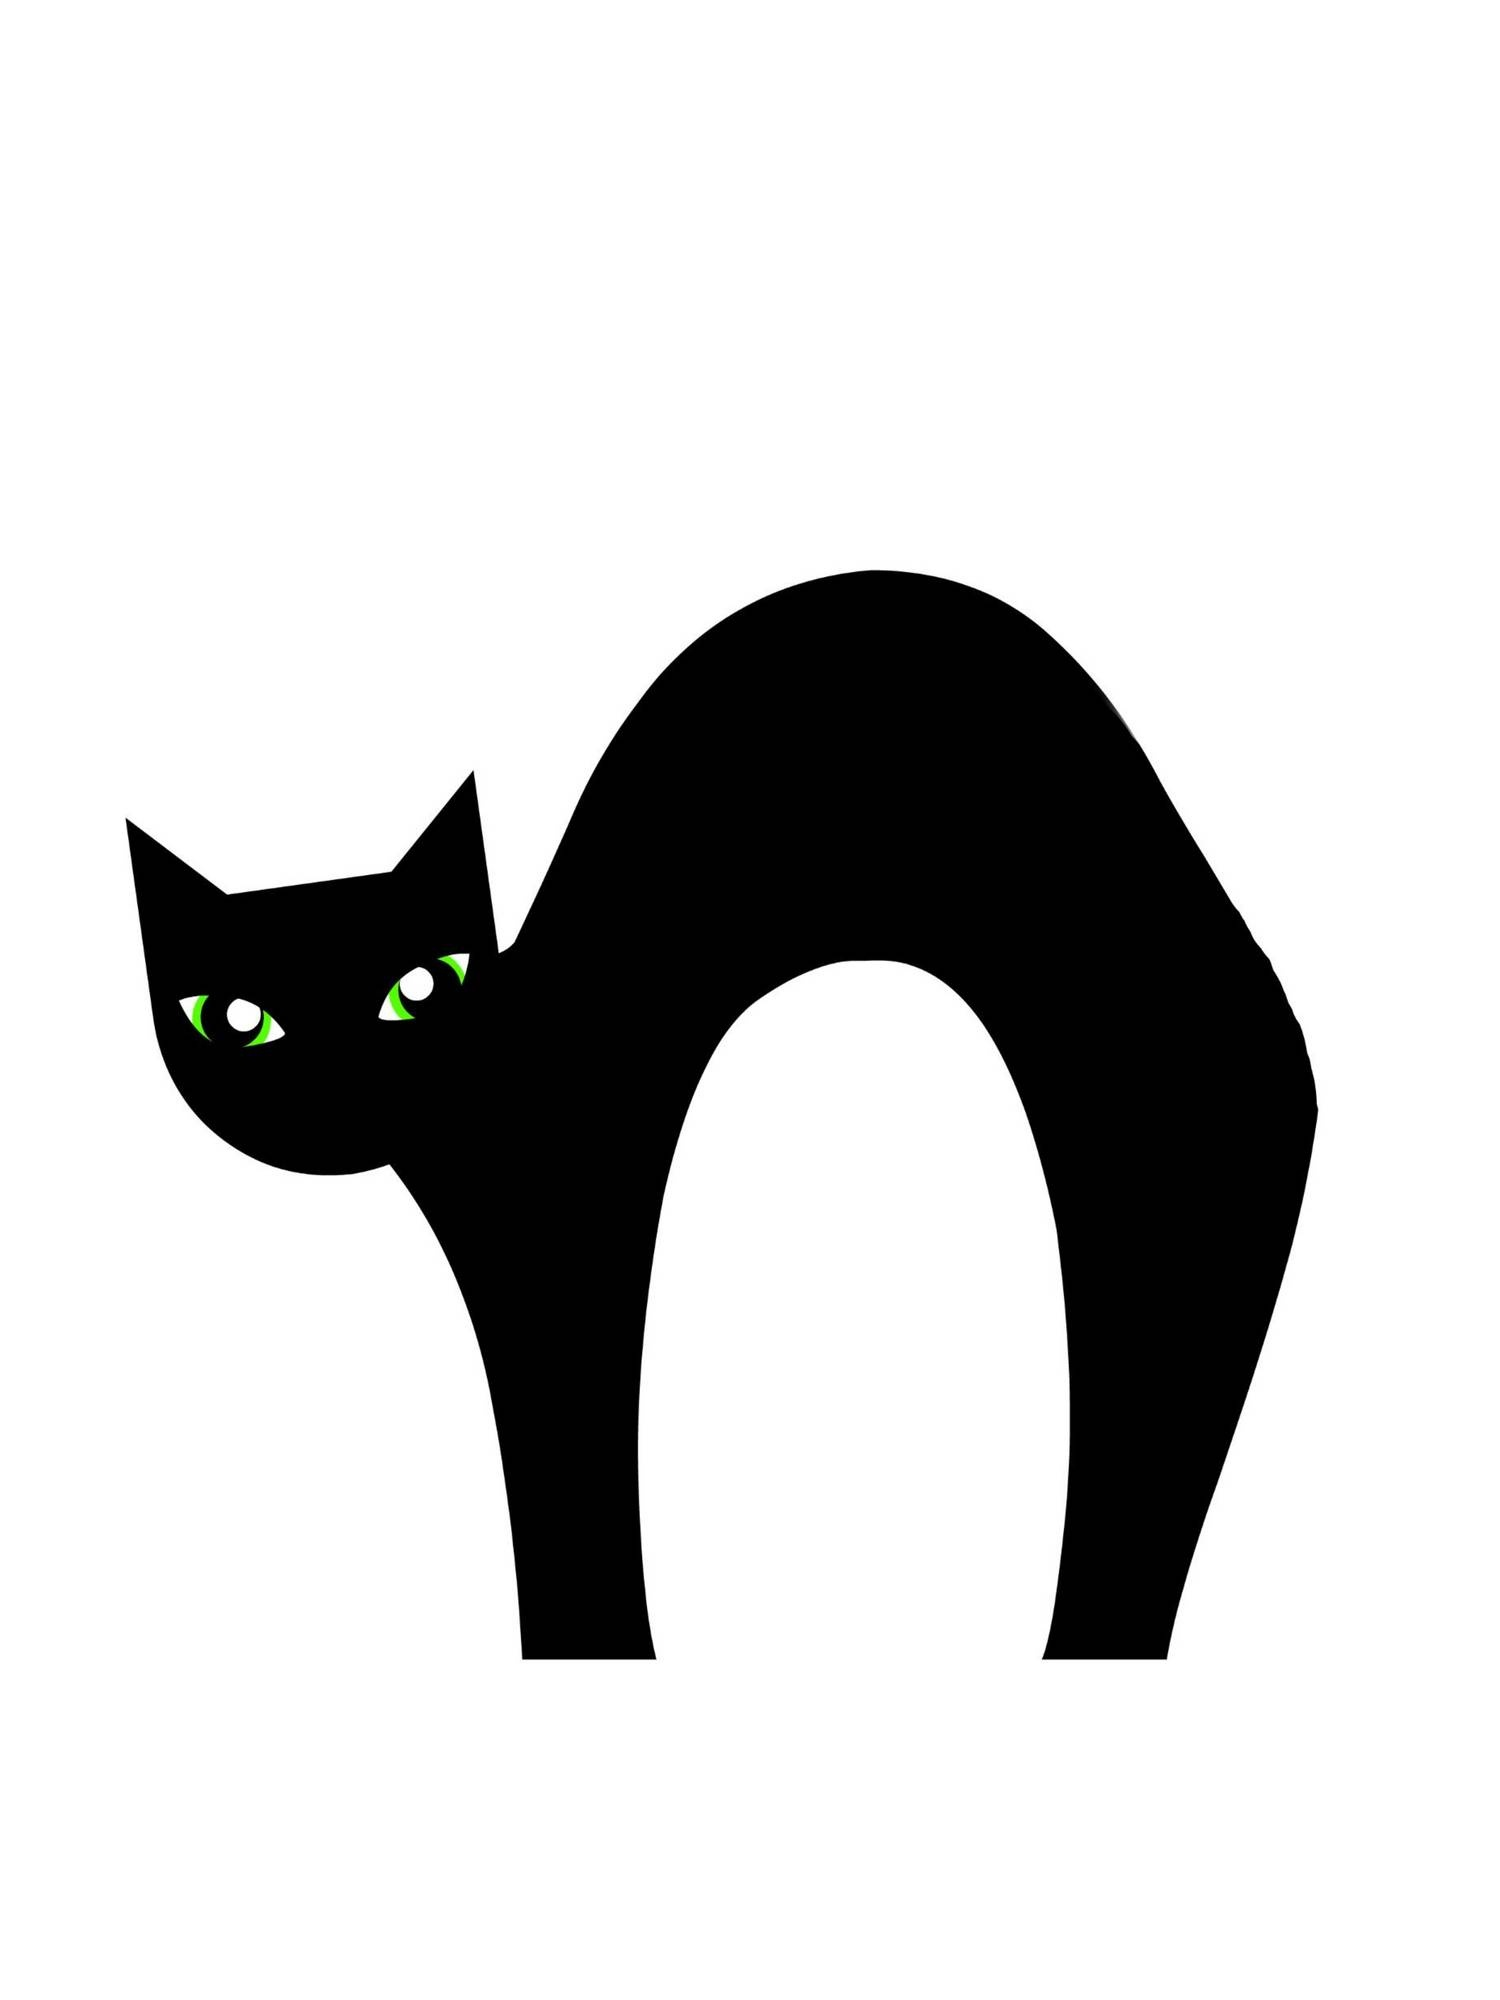 Pin The Tail On The Black Cat .pdf | Docdroid - Free Printable Pin The Tail On The Cat